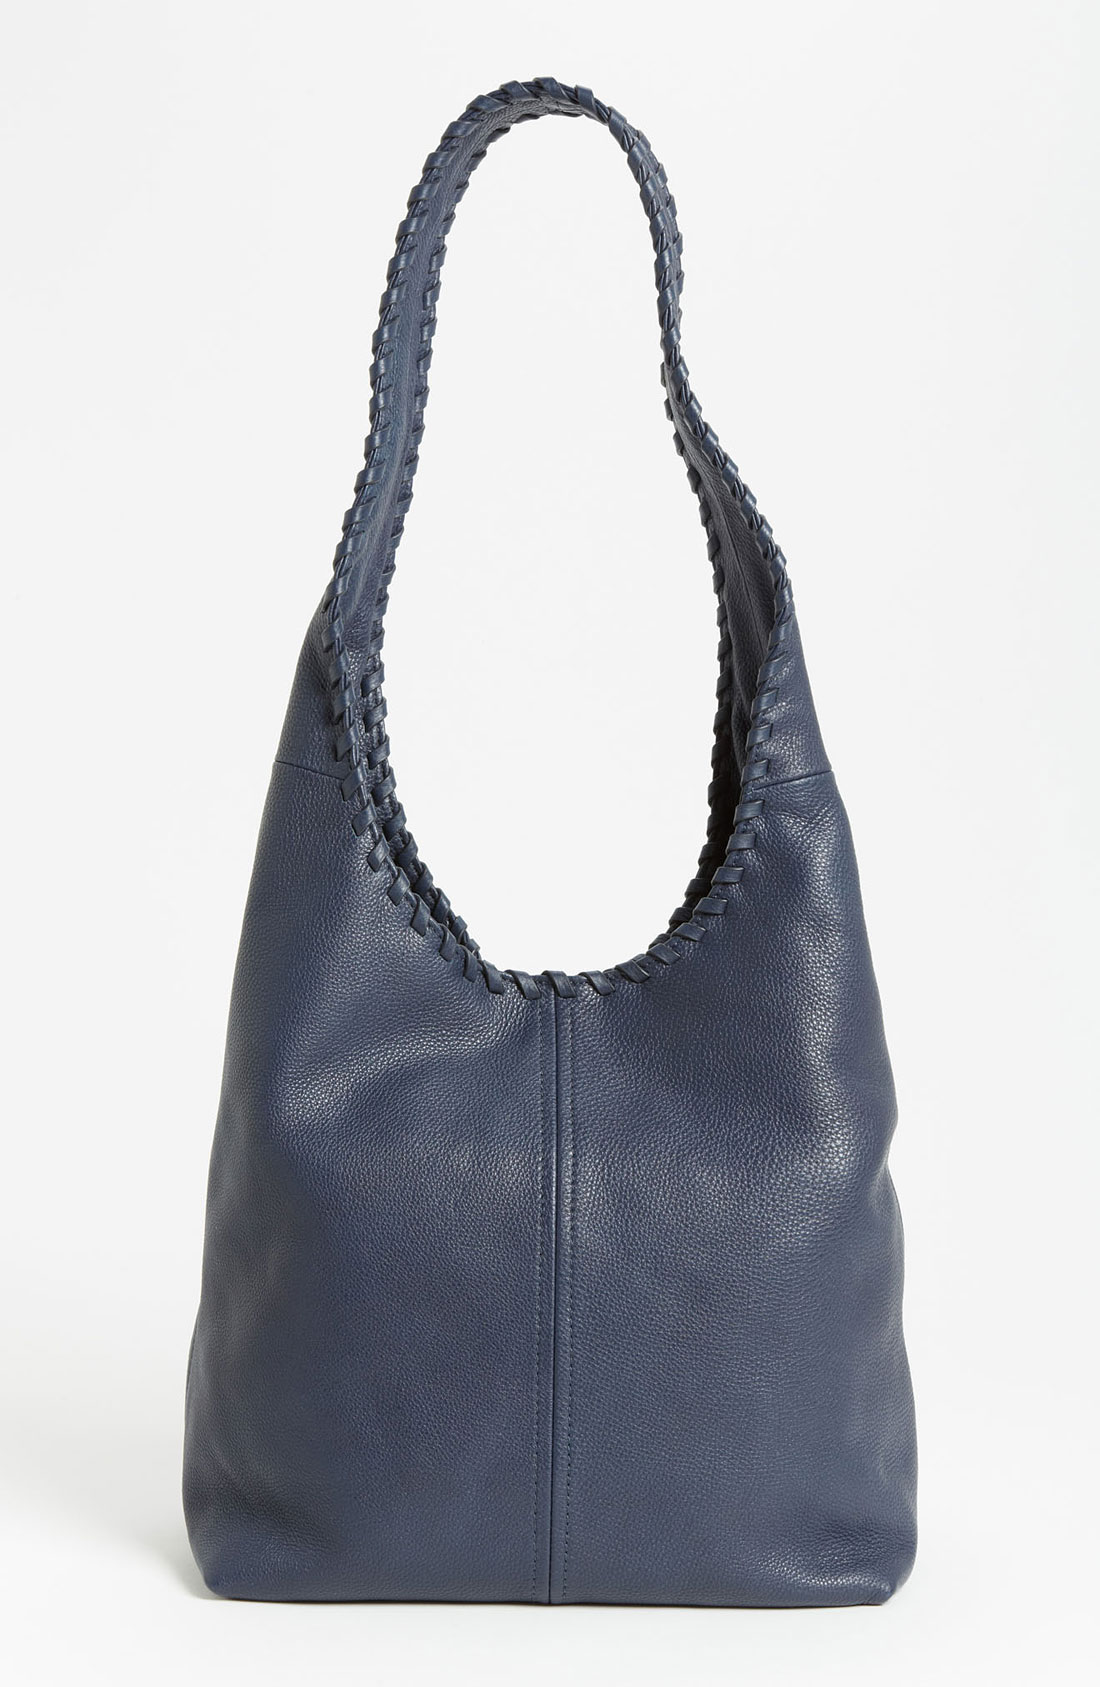 Tory Burch Marion Leather Hobo Bag In Blue Tory Navy Lyst